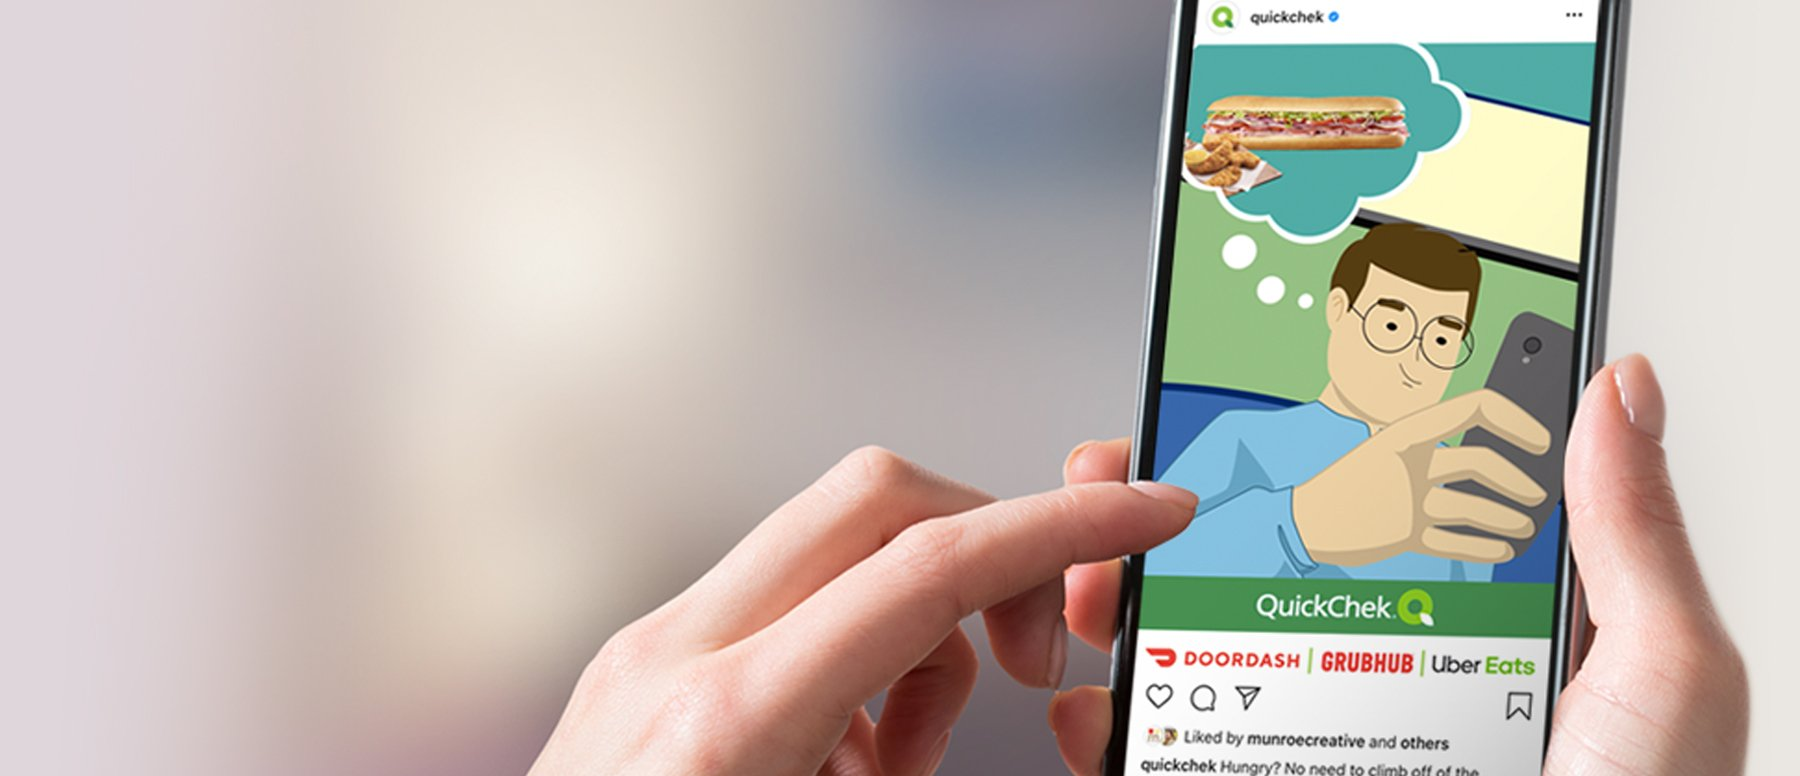 Digital Marketing Campaign for QuickChek Delivery